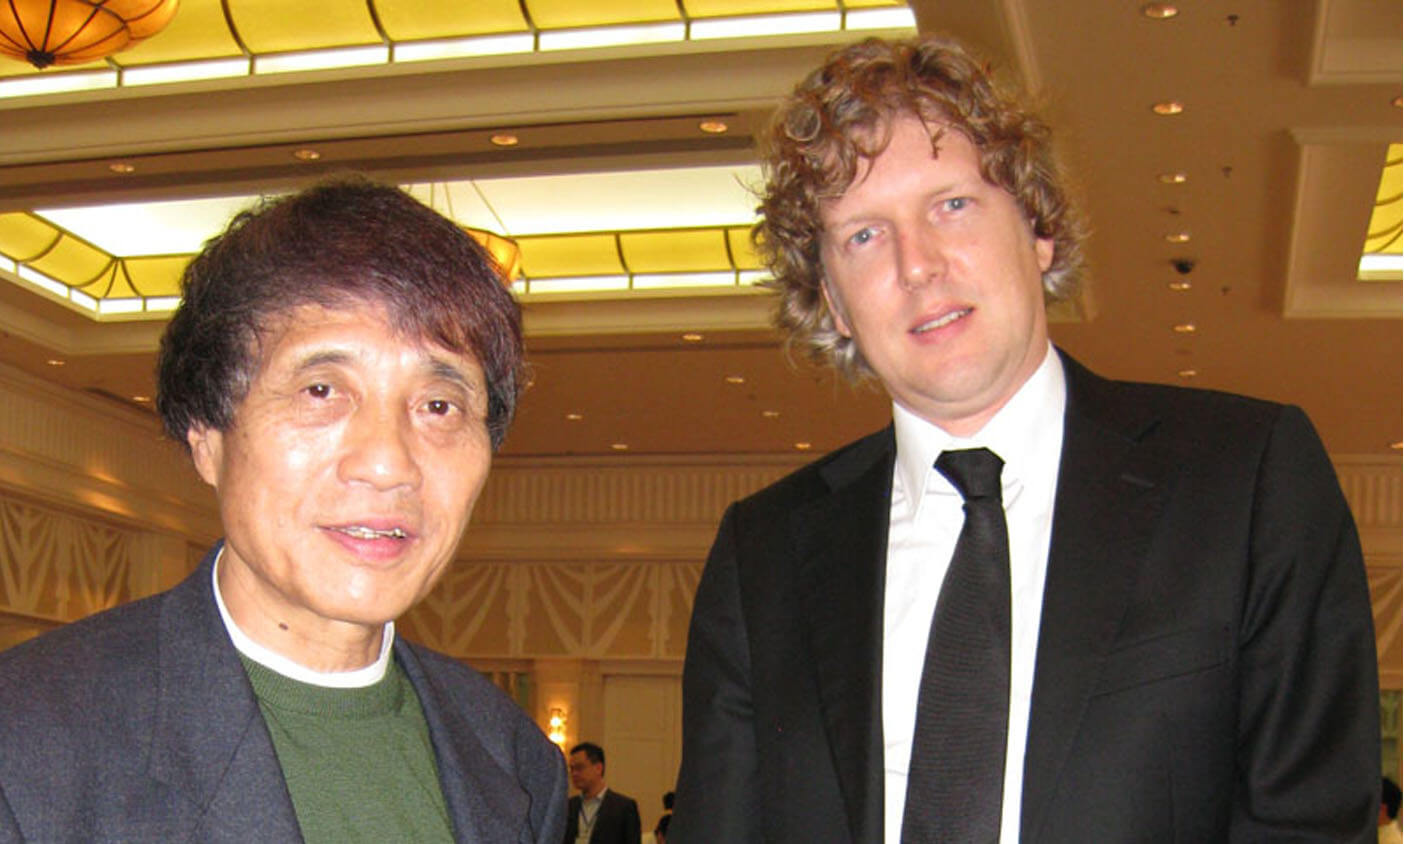 Tadoa Ando And Koen Olthuis At Conference In China